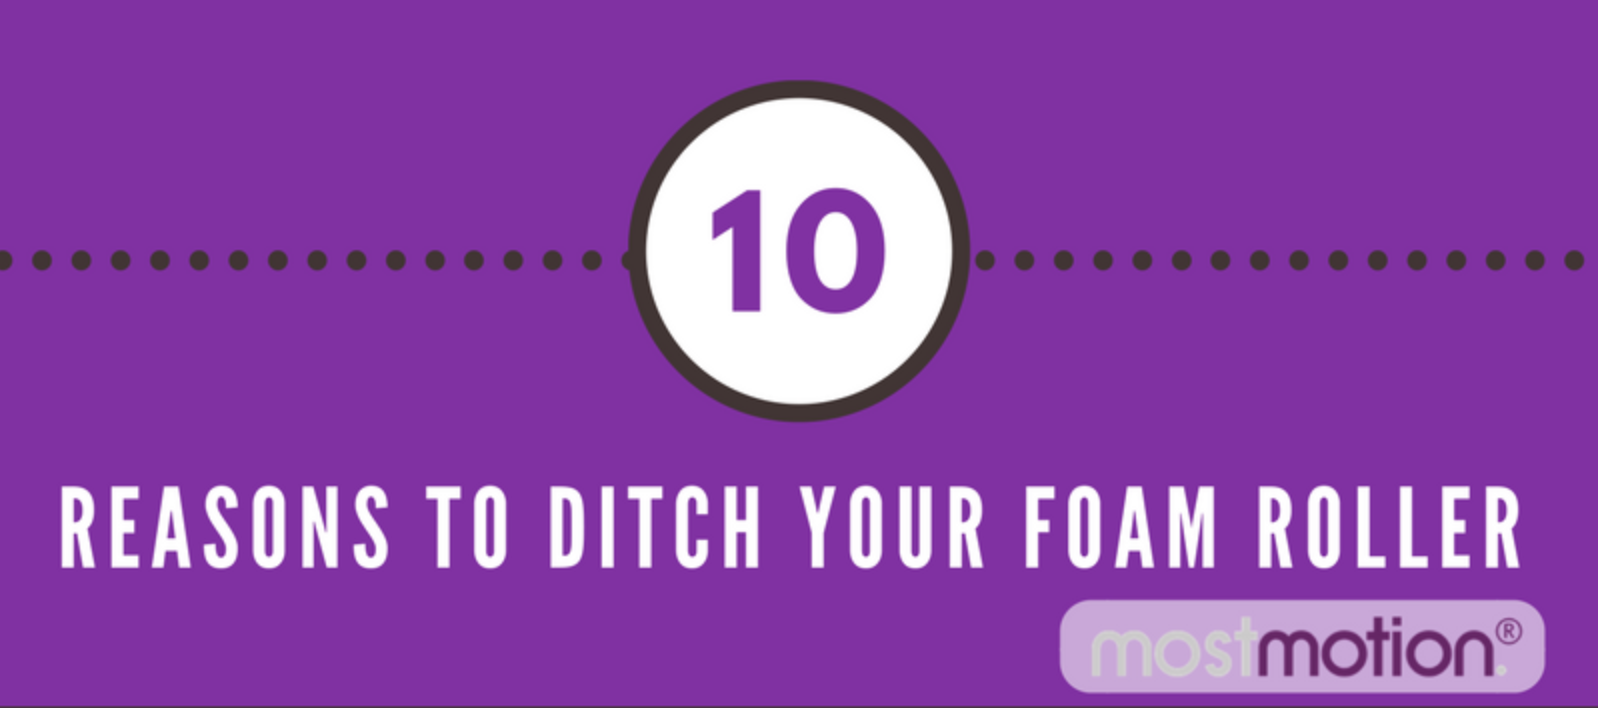 10 Reasons to Ditch Your Foam Roller